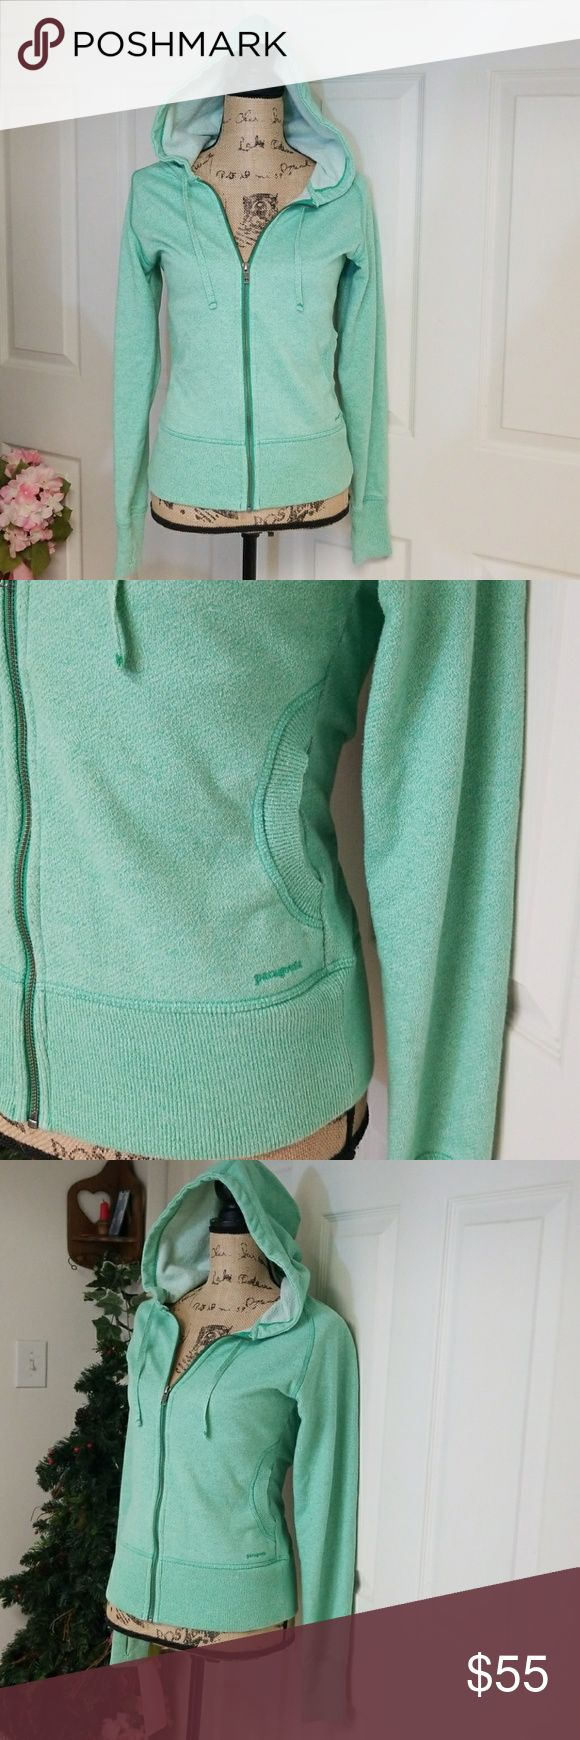 Patagonia Zip-Up Hoodie Excelent condition  Light green zip-up hoodie with 2 front side pockets   Thumb holes Patagonia Tops Sweatshirts & Hoodies